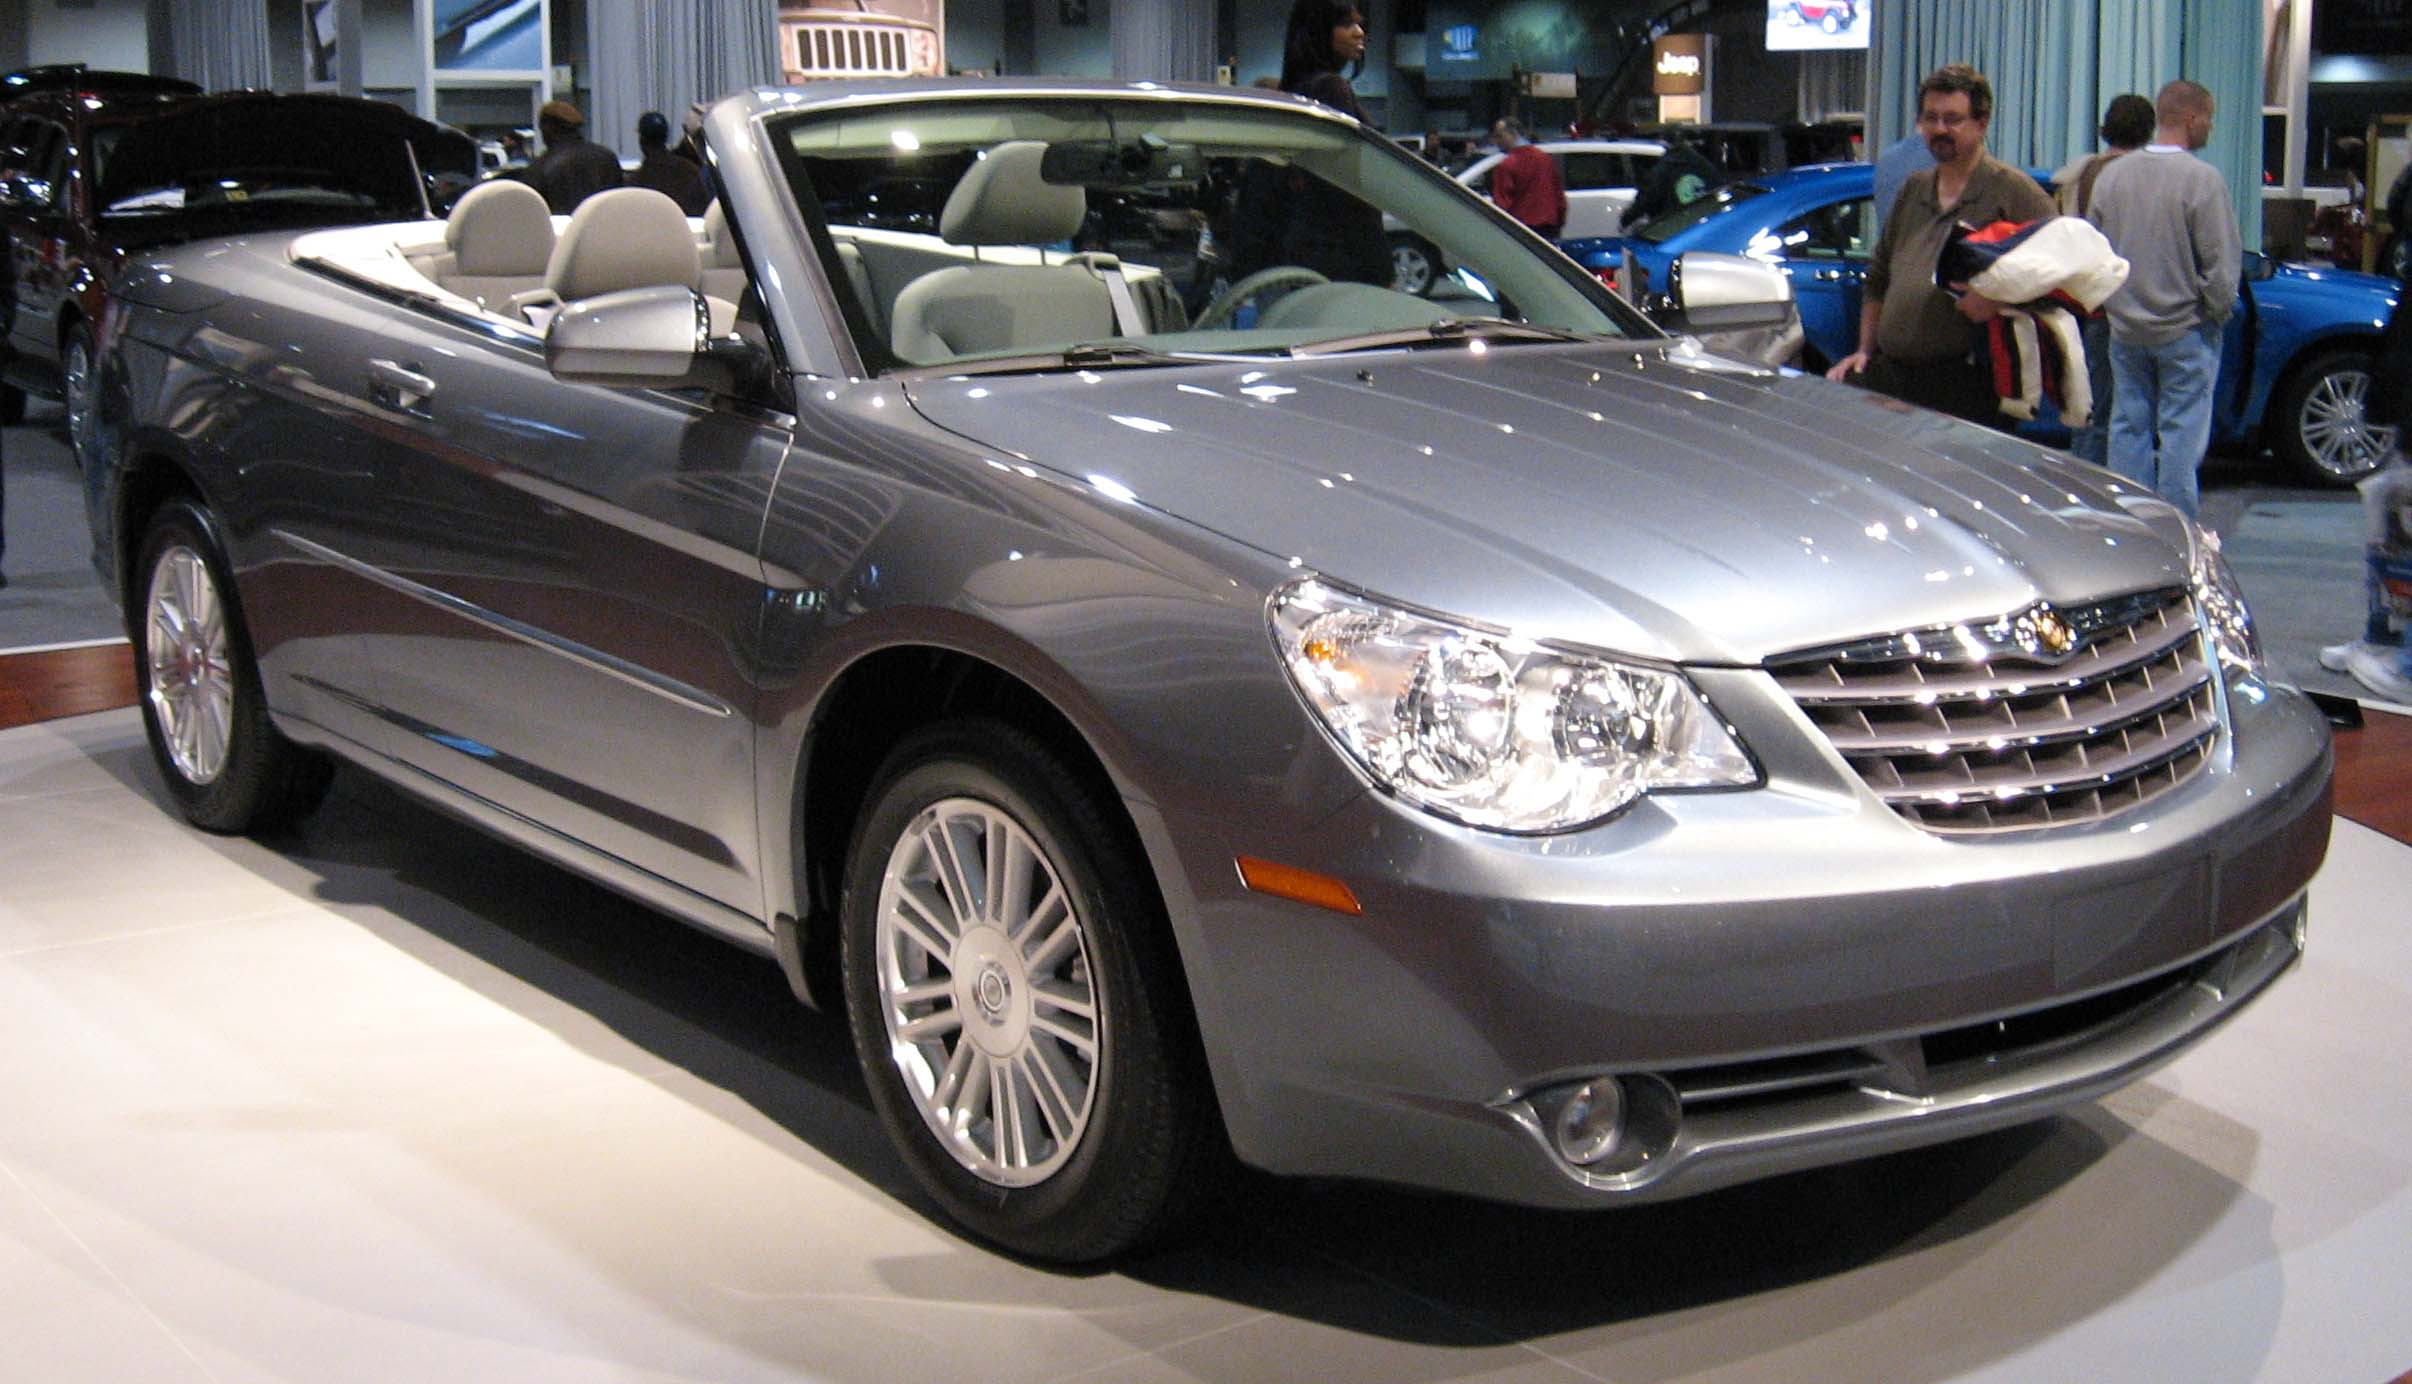 chrysler sebring cabrio reviews chrysler sebring cabrio car reviews. Black Bedroom Furniture Sets. Home Design Ideas